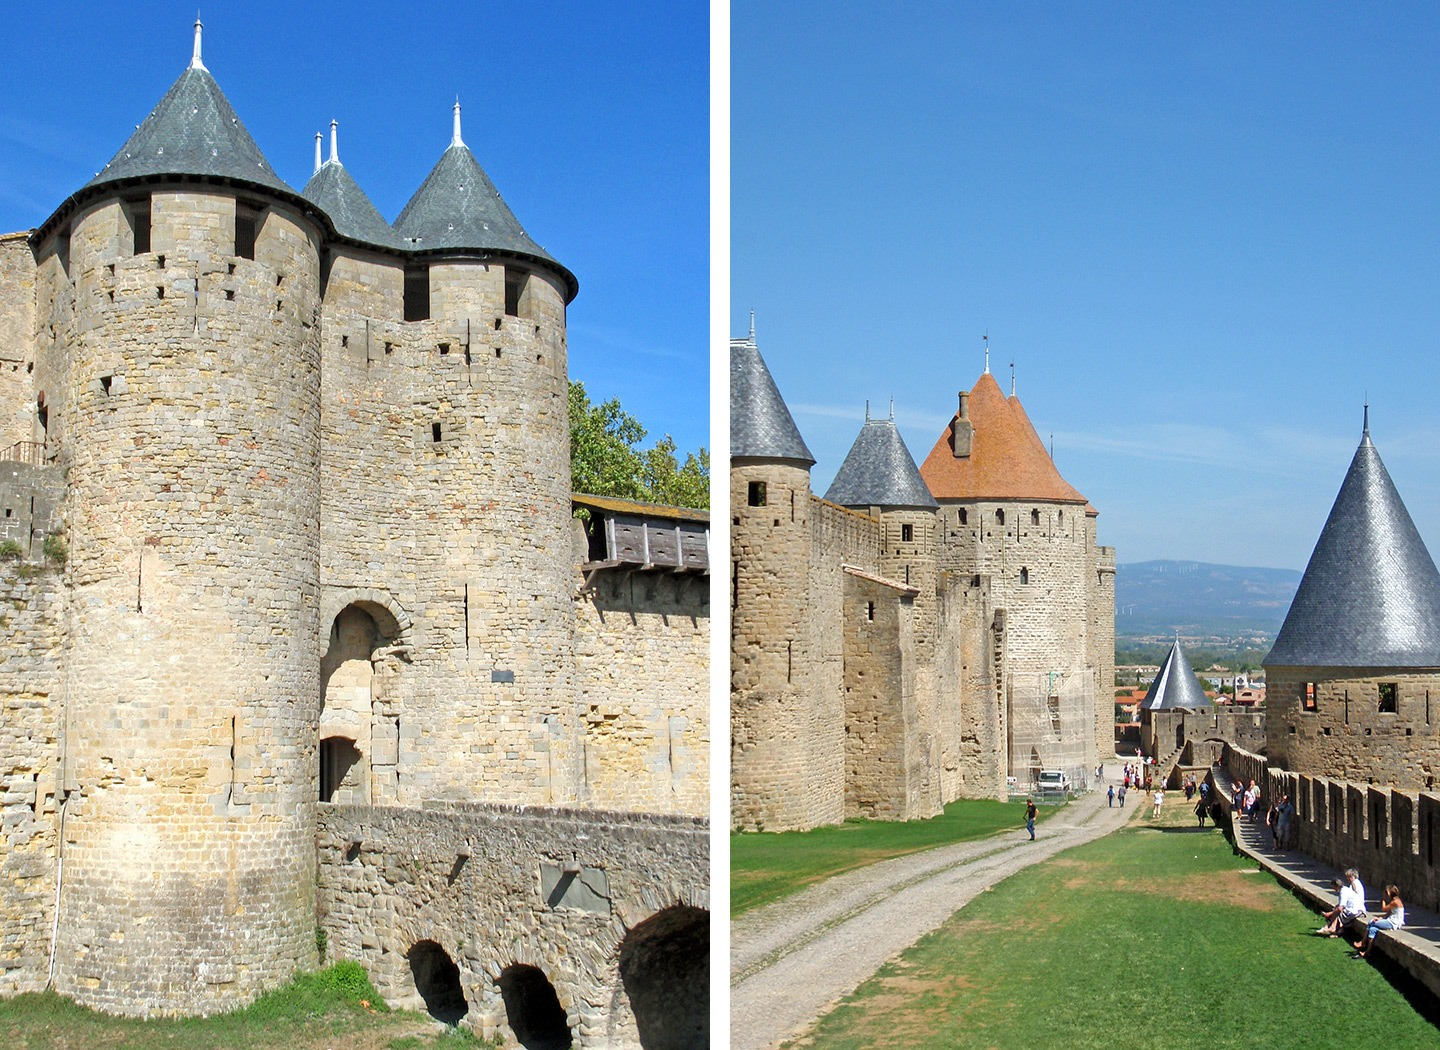 Carcassonne's medieval walled city